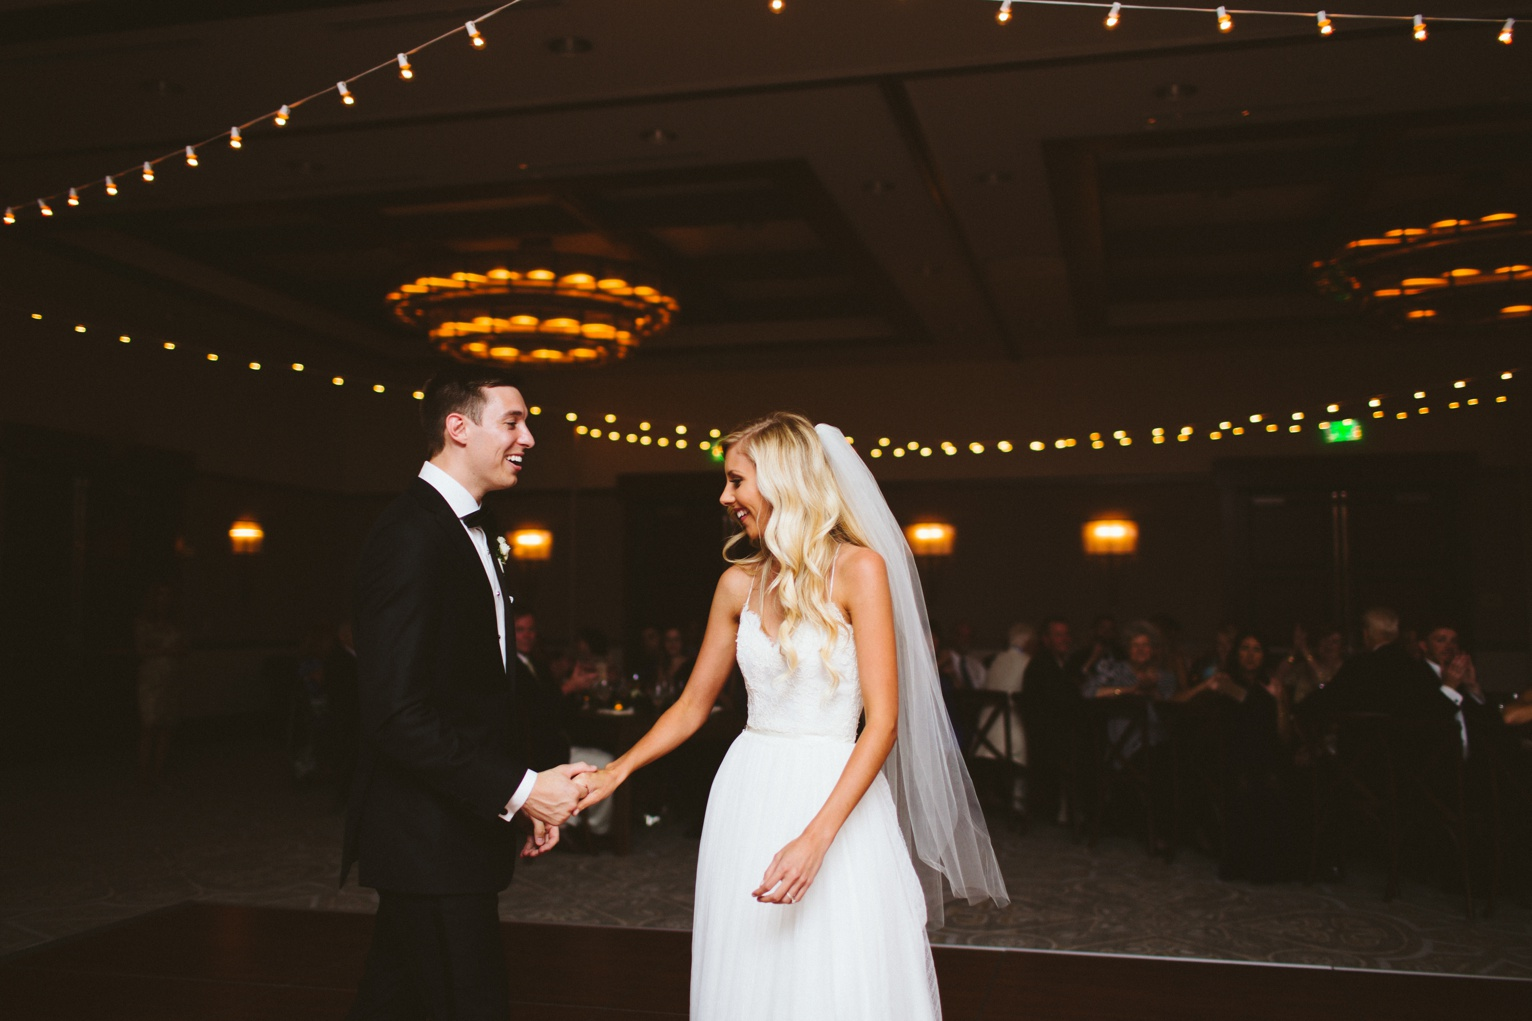 Dreamtownco.com_blog_Jordan&Lindsey_Wedding__0161.jpg